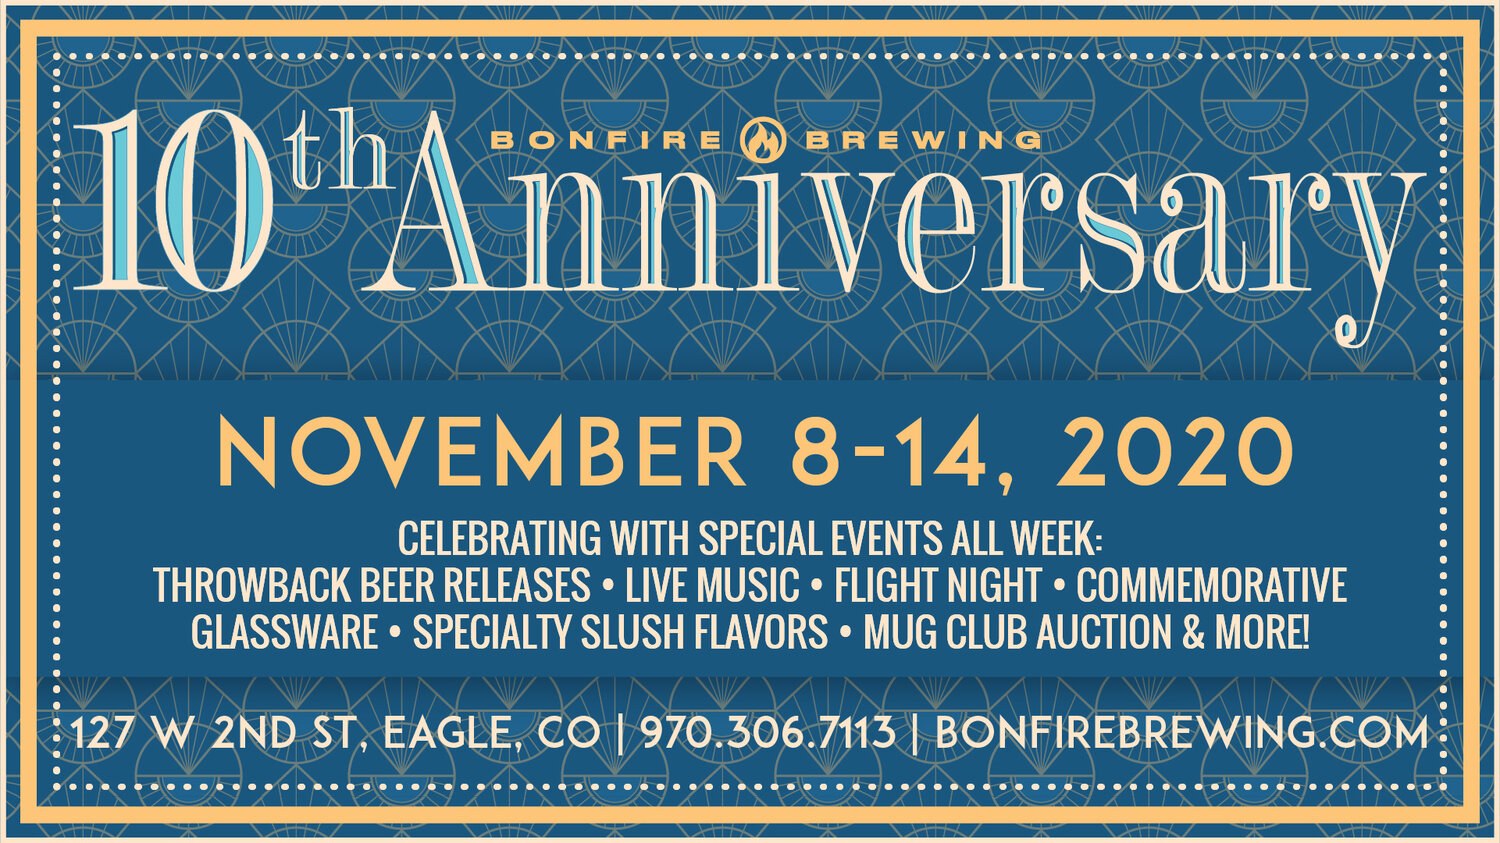 Bonfire Brewing Celebrates 10th Anniversary With A Week Of Throwback Beers And Live Music